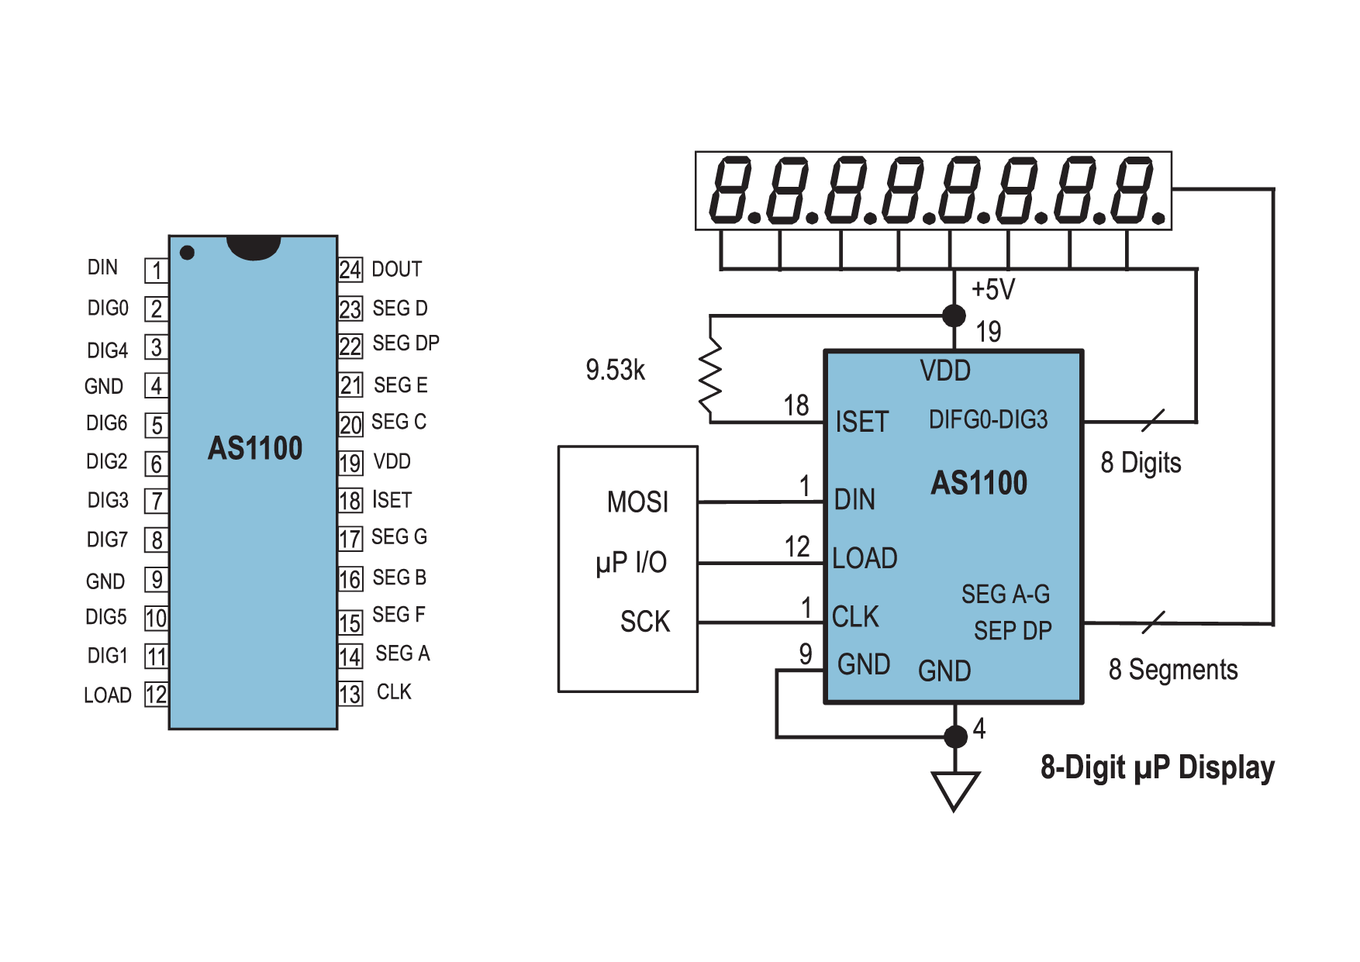 As1100 Led Dot Matrix Driver 8 Digit Serially Brightness Control For Multiplexed Leds It Includes A 4 Bit Pwm The Entire And An External Resistor Can Be Used Analog Current Adjustment Up To 5ma Per